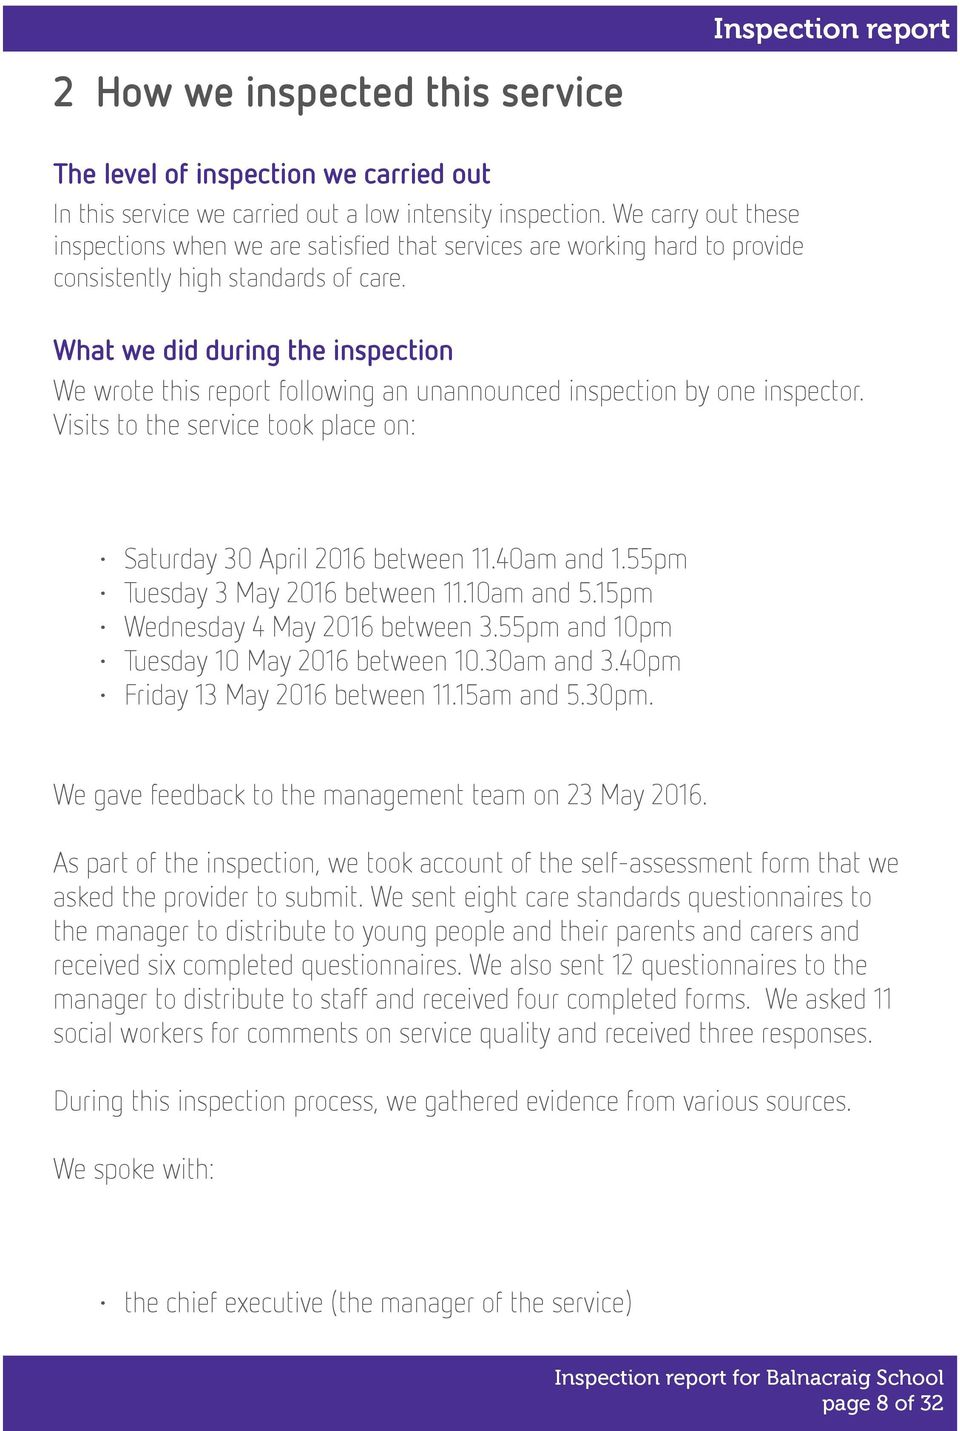 What we did during the inspection We wrote this report following an unannounced inspection by one inspector. Visits to the service took place on: Saturday 30 April 2016 between 11.40am and 1.